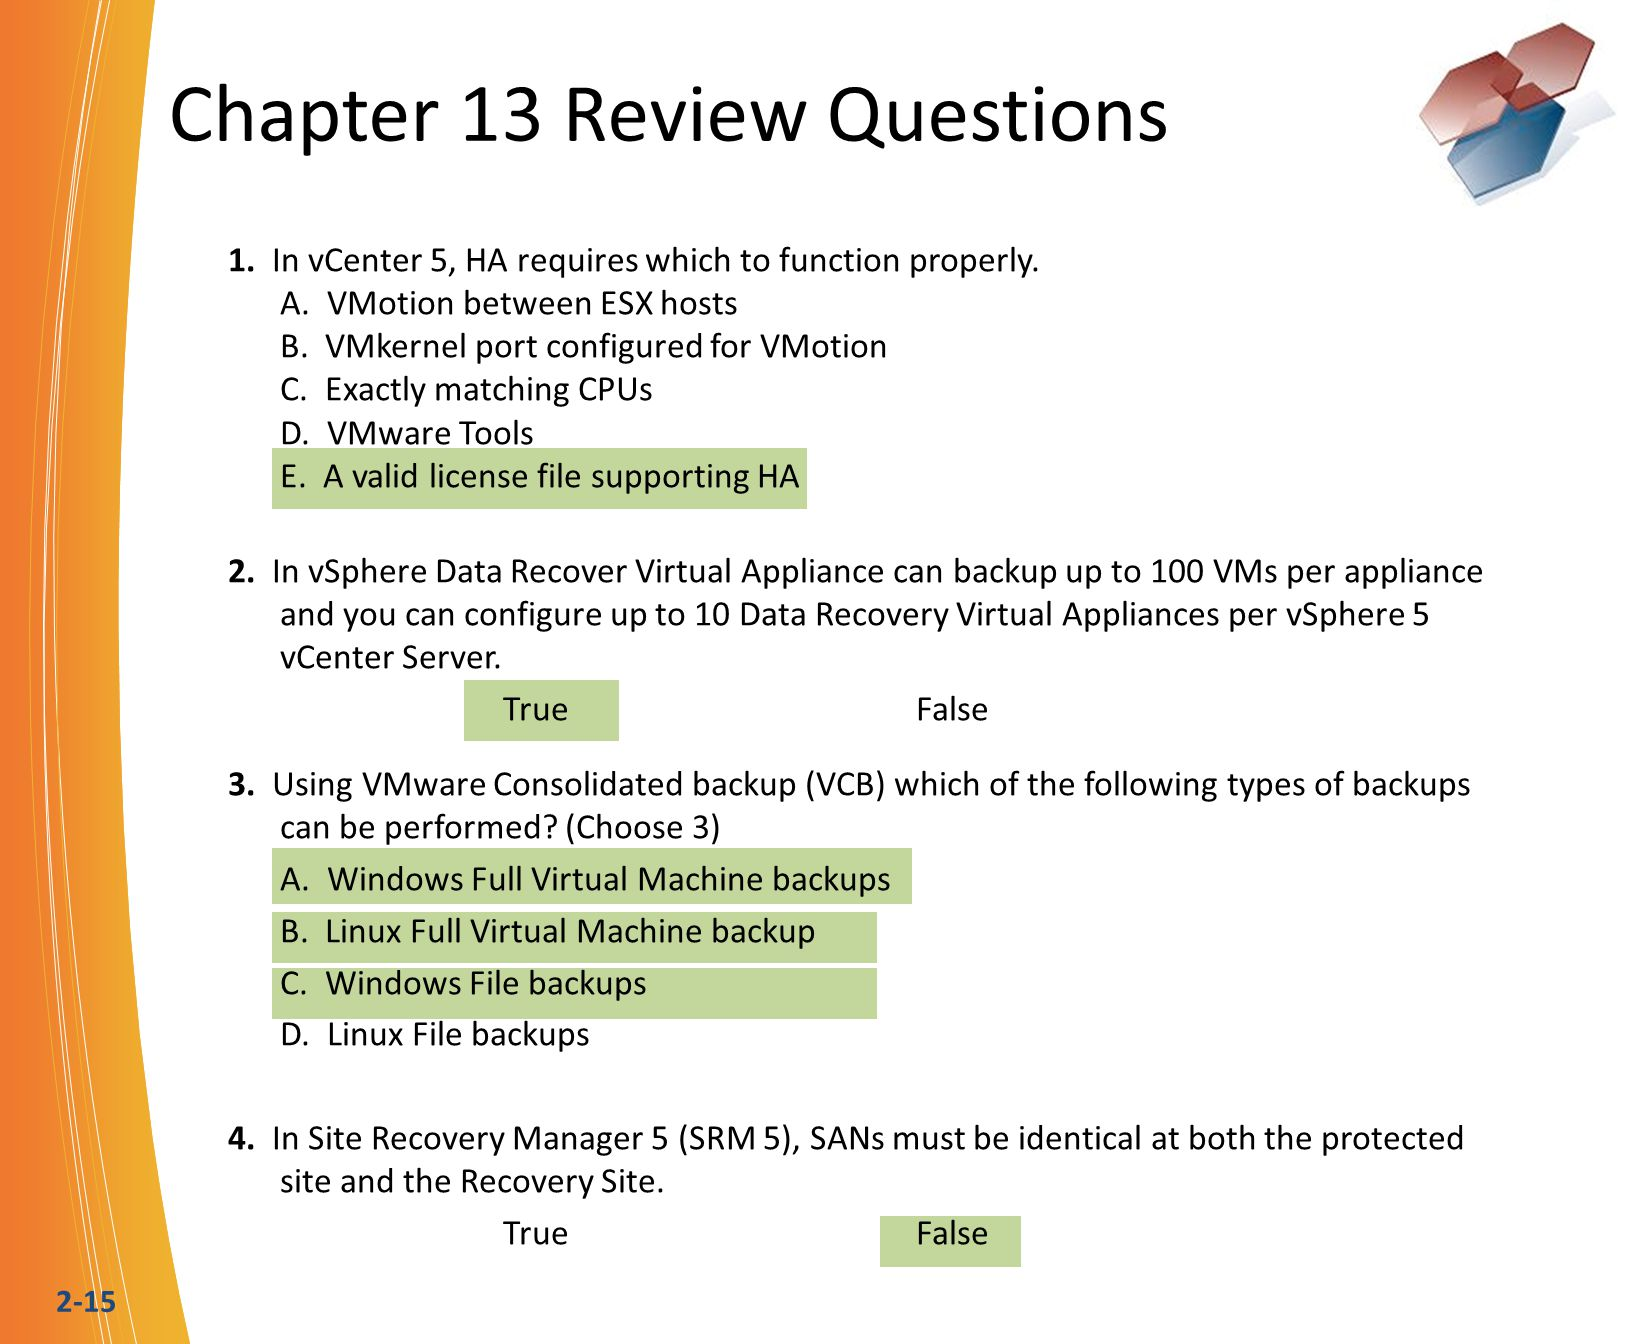 2-15 Chapter 13 Review Questions 1. In vCenter 5, HA requires which to function properly. A. VMotion between ESX hosts B. VMkernel port configured for